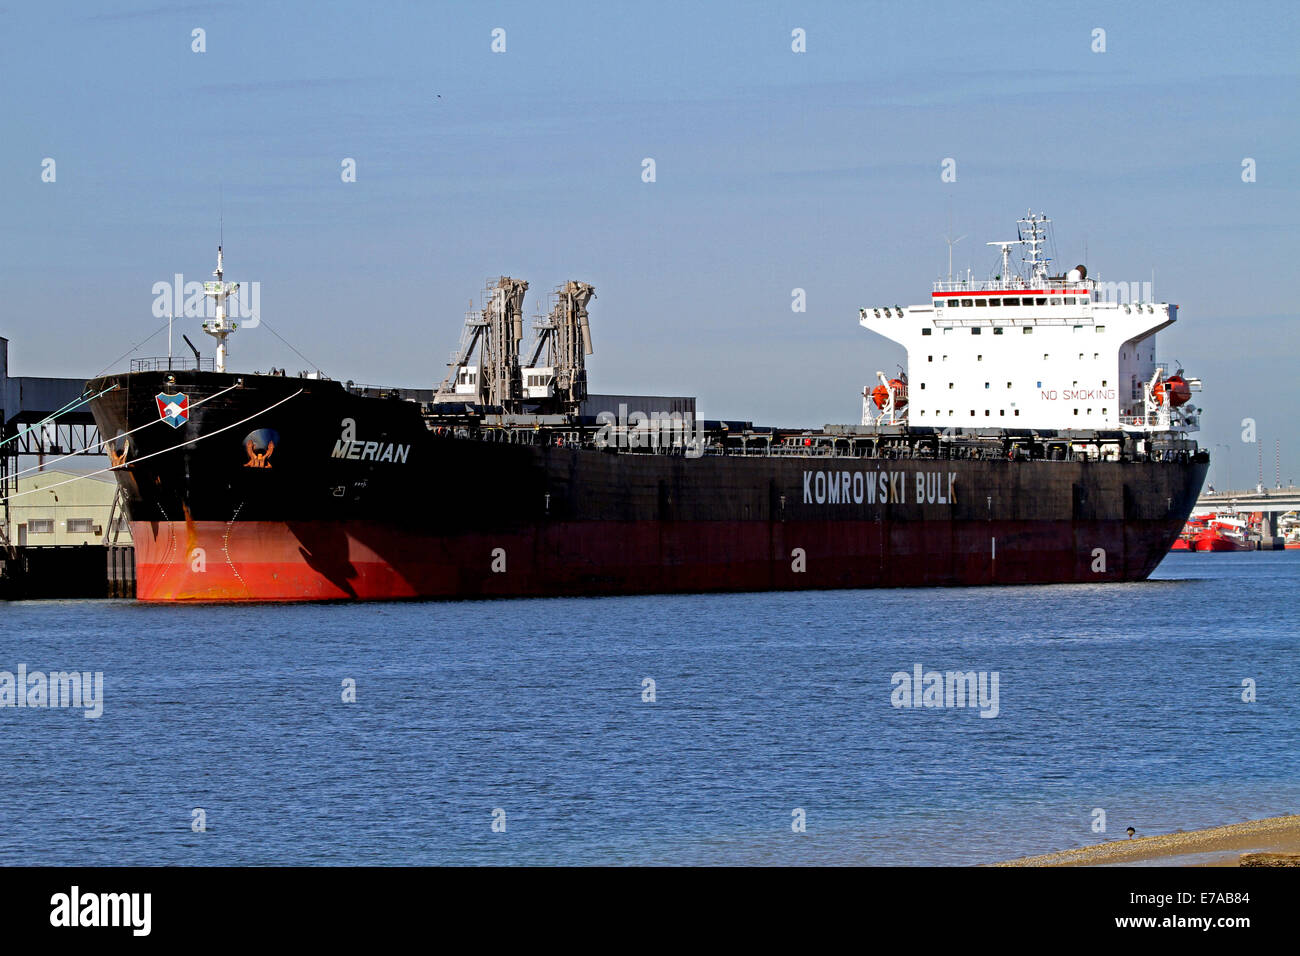 The bulk carrier Merian moored in Adelaide Australia - Stock Image